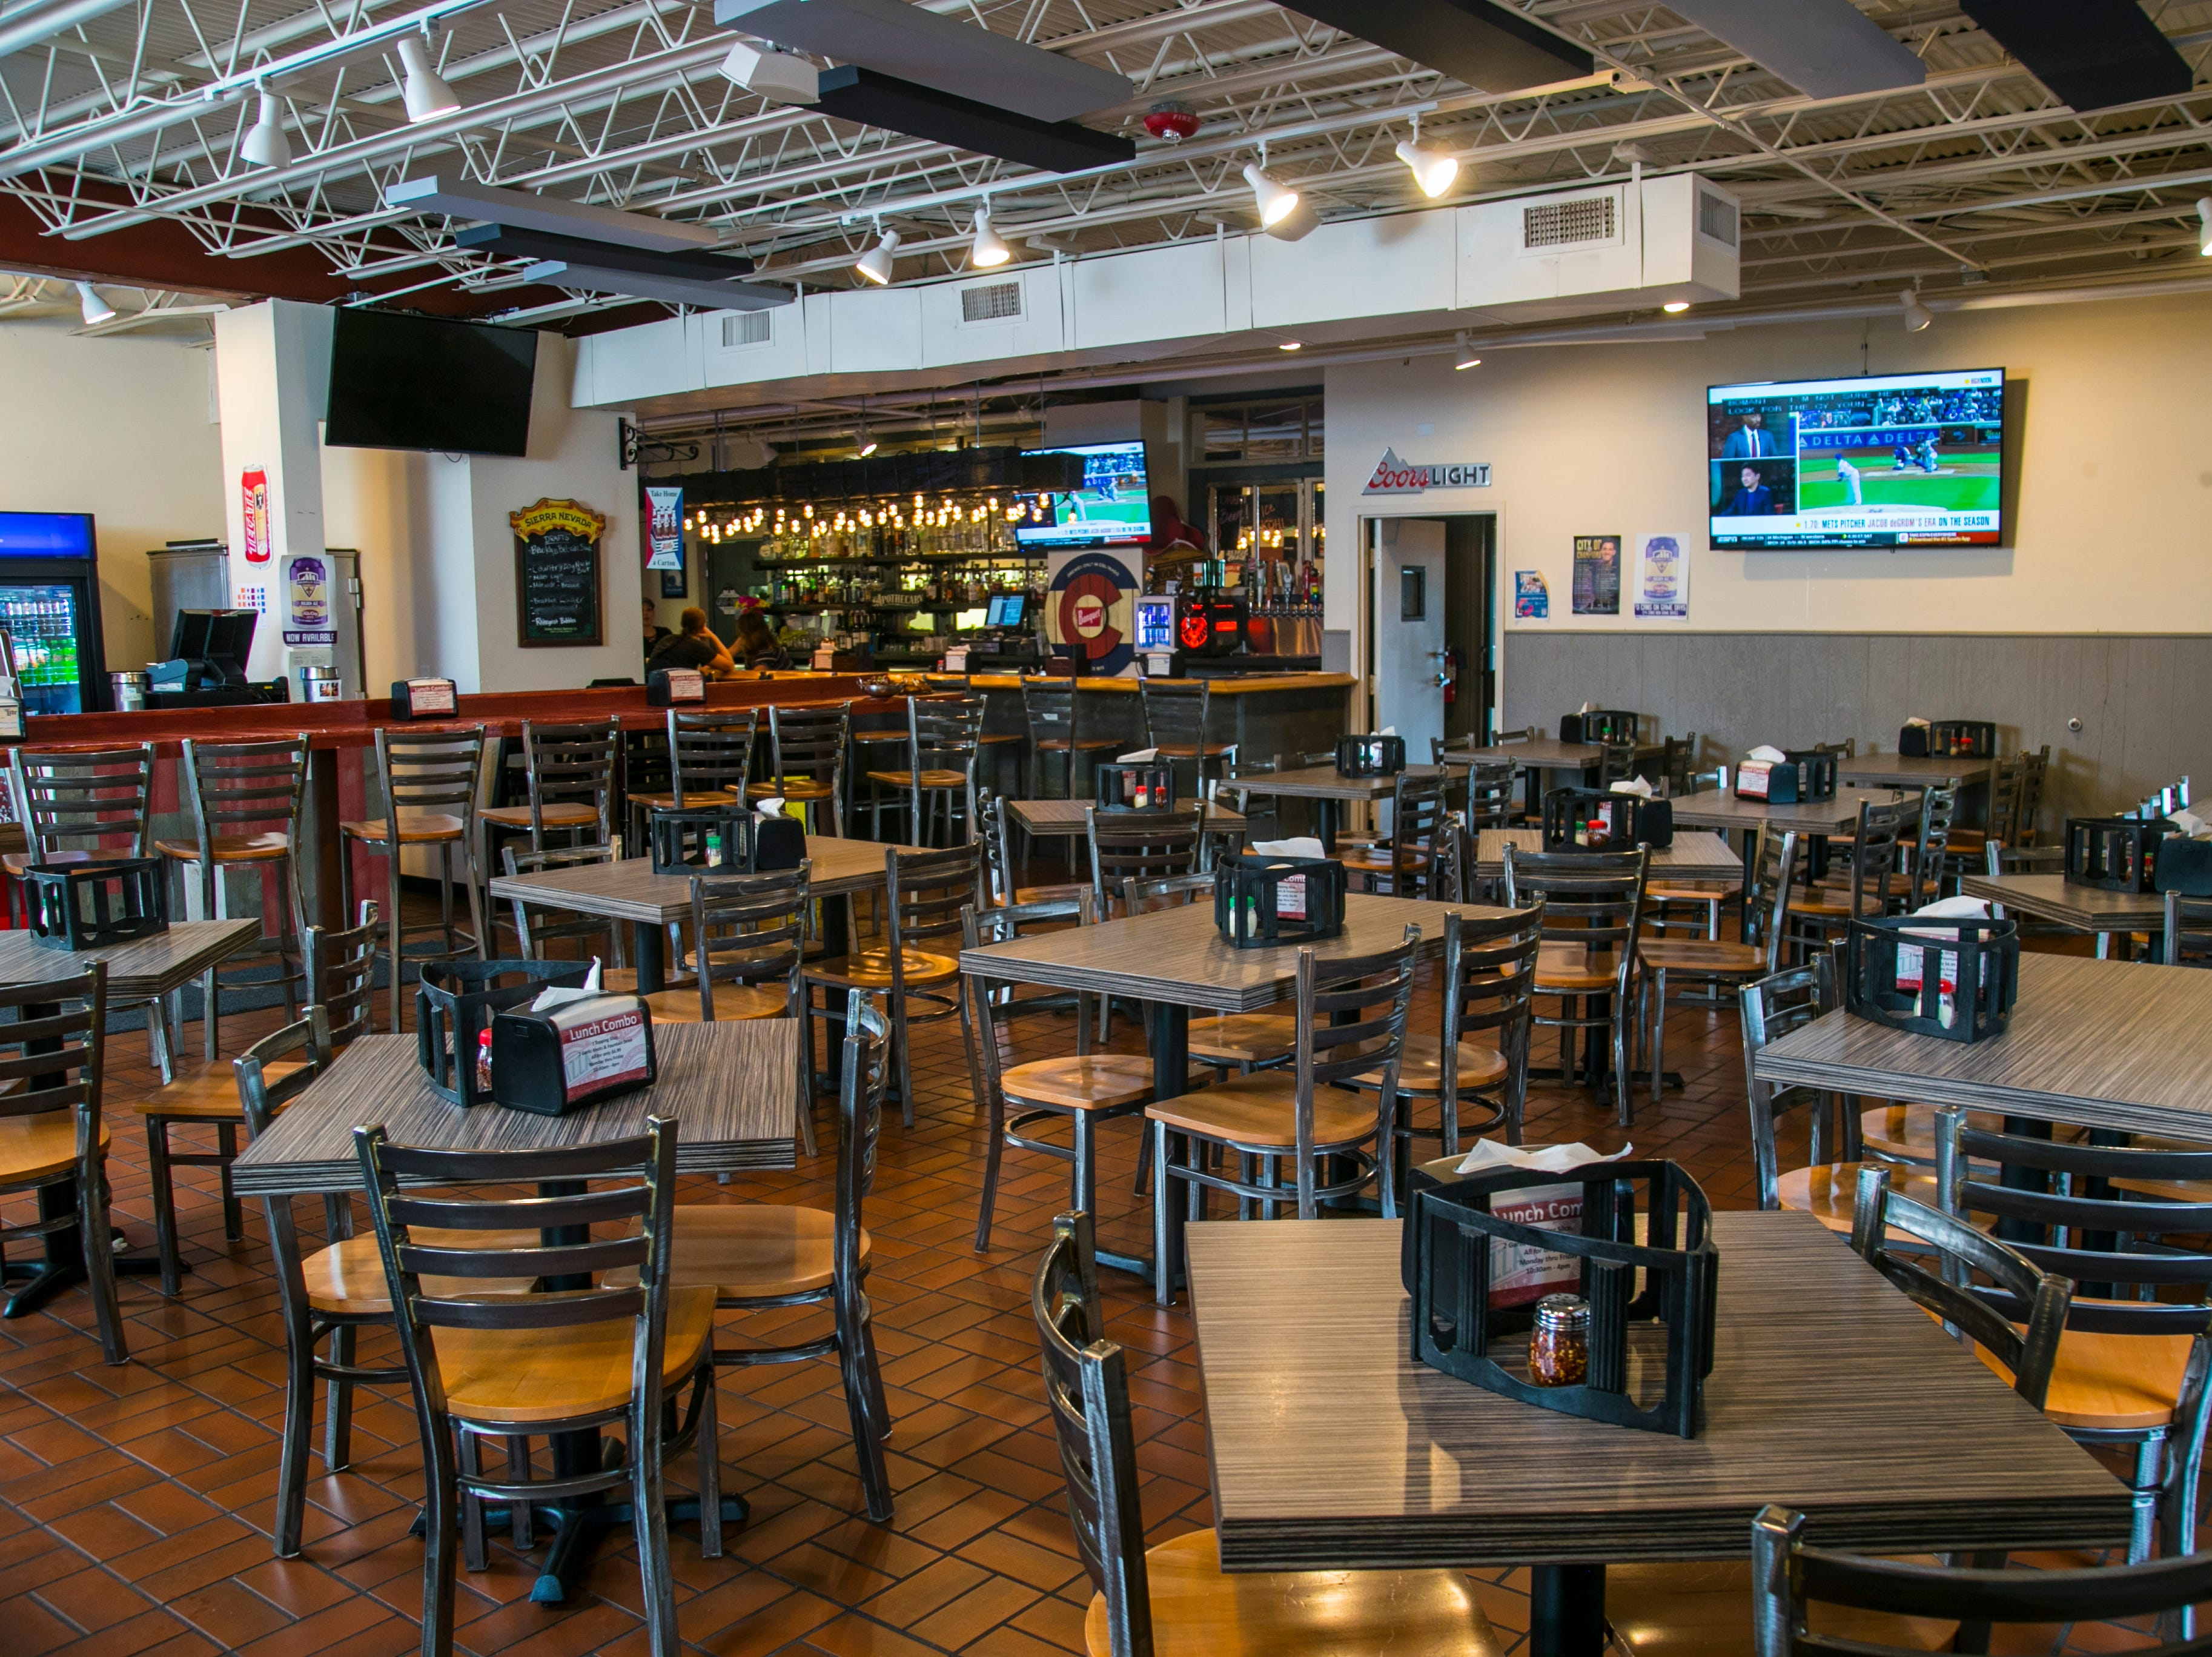 Butchertown Pizza Hall has a large dining area as well as coin-operated video games and tabletop shuffleboard. There's a bar, too.  Sept. 27, 2018